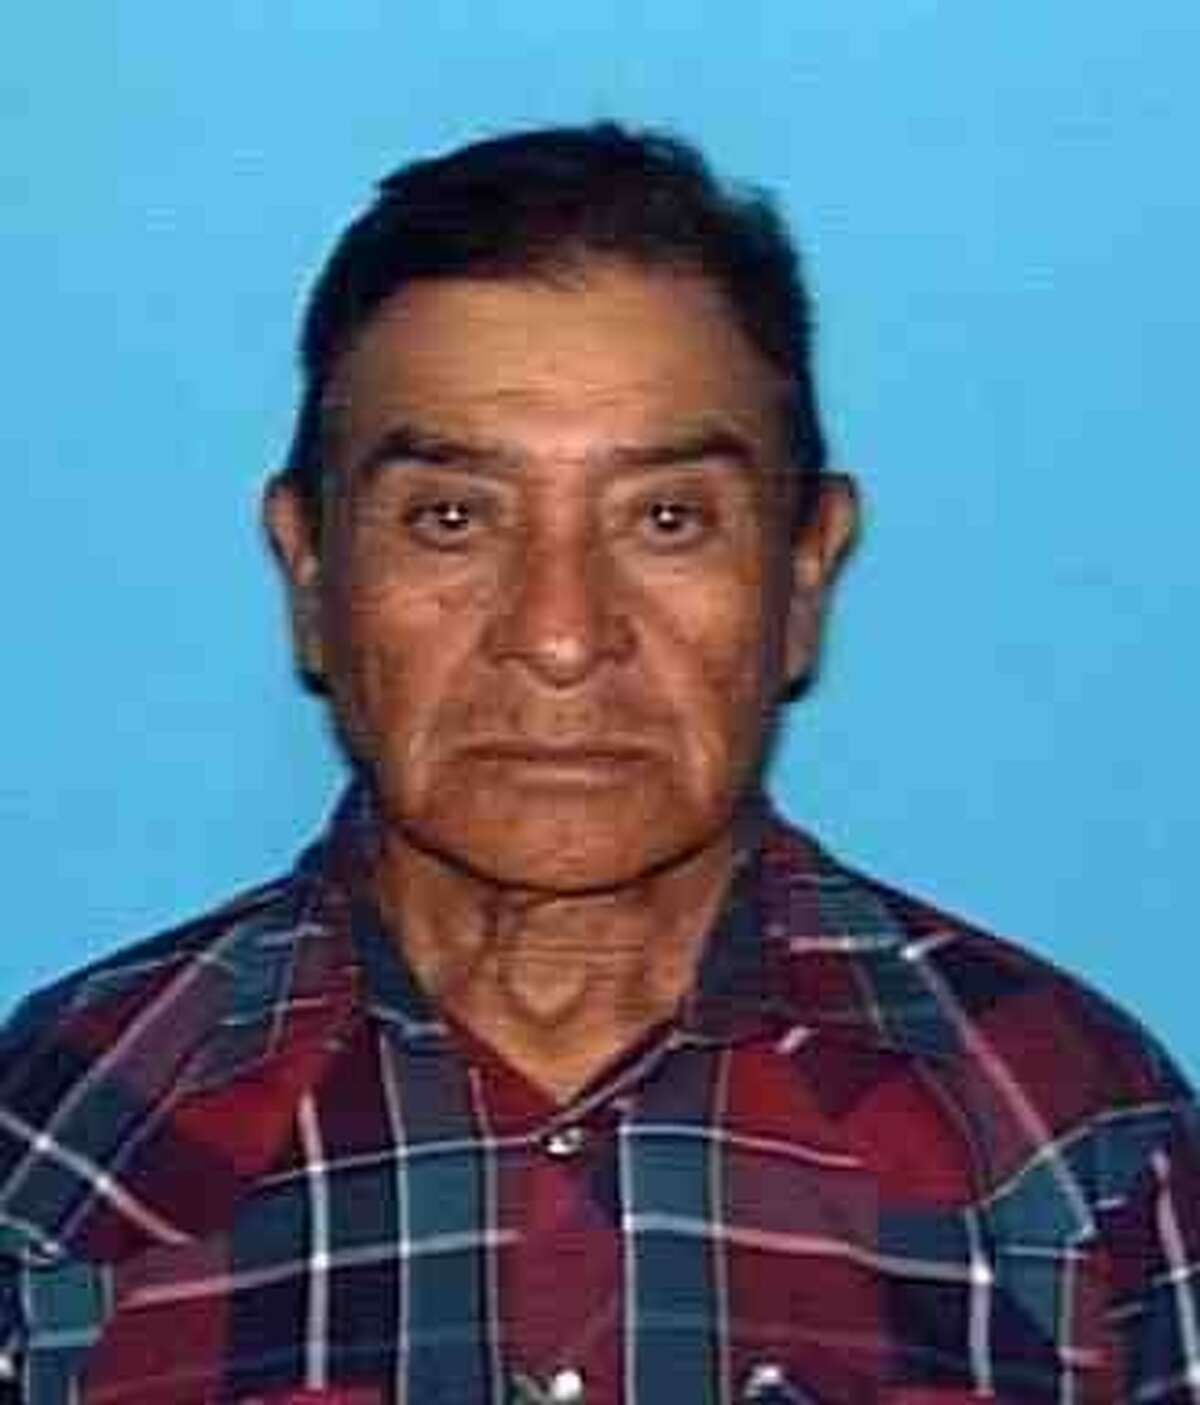 Natividad Hernandez, 89, was struck and killed while walking eastbound in the 12900 block of Beaumont Highway on Thursday (1/17). The vehicle, possibly a commercial truck with flatbed trailer, continued eastbound and the driver did not stop to help the victim.